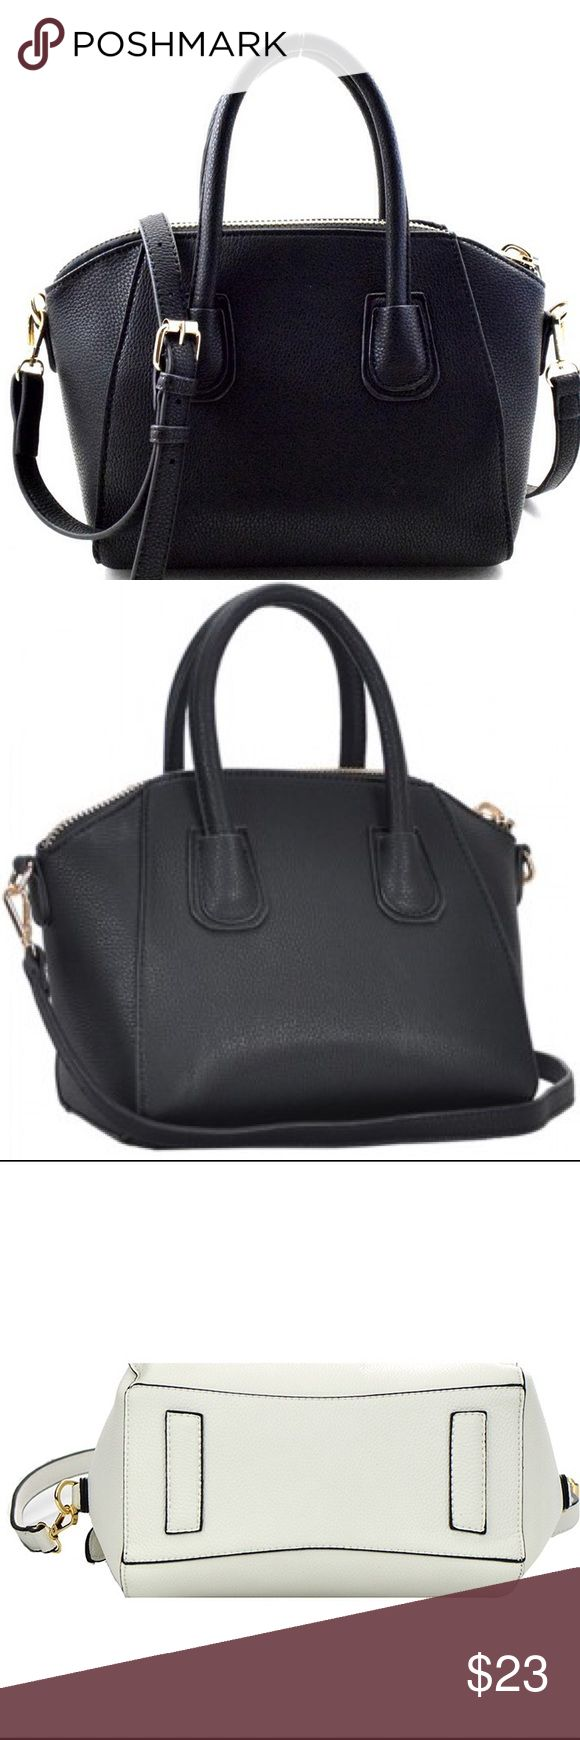 """New York style satchel handbag Black Welcome to New York! Well, maybe not, but this bag will give you that New Yorker flare. It has a double center that reveals a printed lining when opened up. The inside also has one large pocket that closes with a zipper, and two medium ones. The bag has two straps for grip and comes with an attachable shoulder strap.   Length 16""""  Width 6""""  Height 9"""" Bags Satchels"""